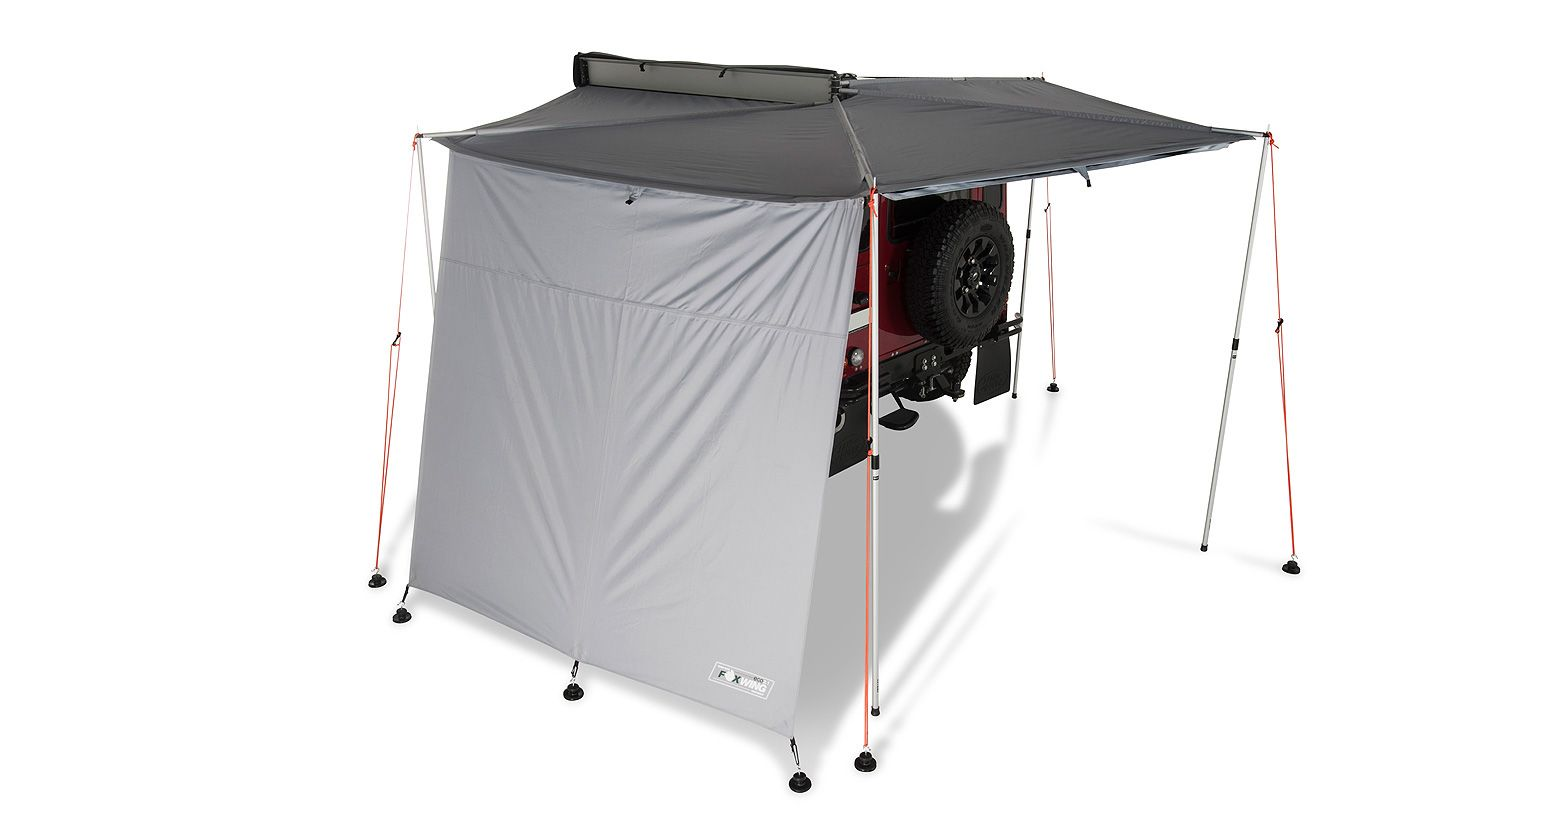 31118 Foxwing Awning Extension Rhino Rack Side Wall Awning Teardrop Camper